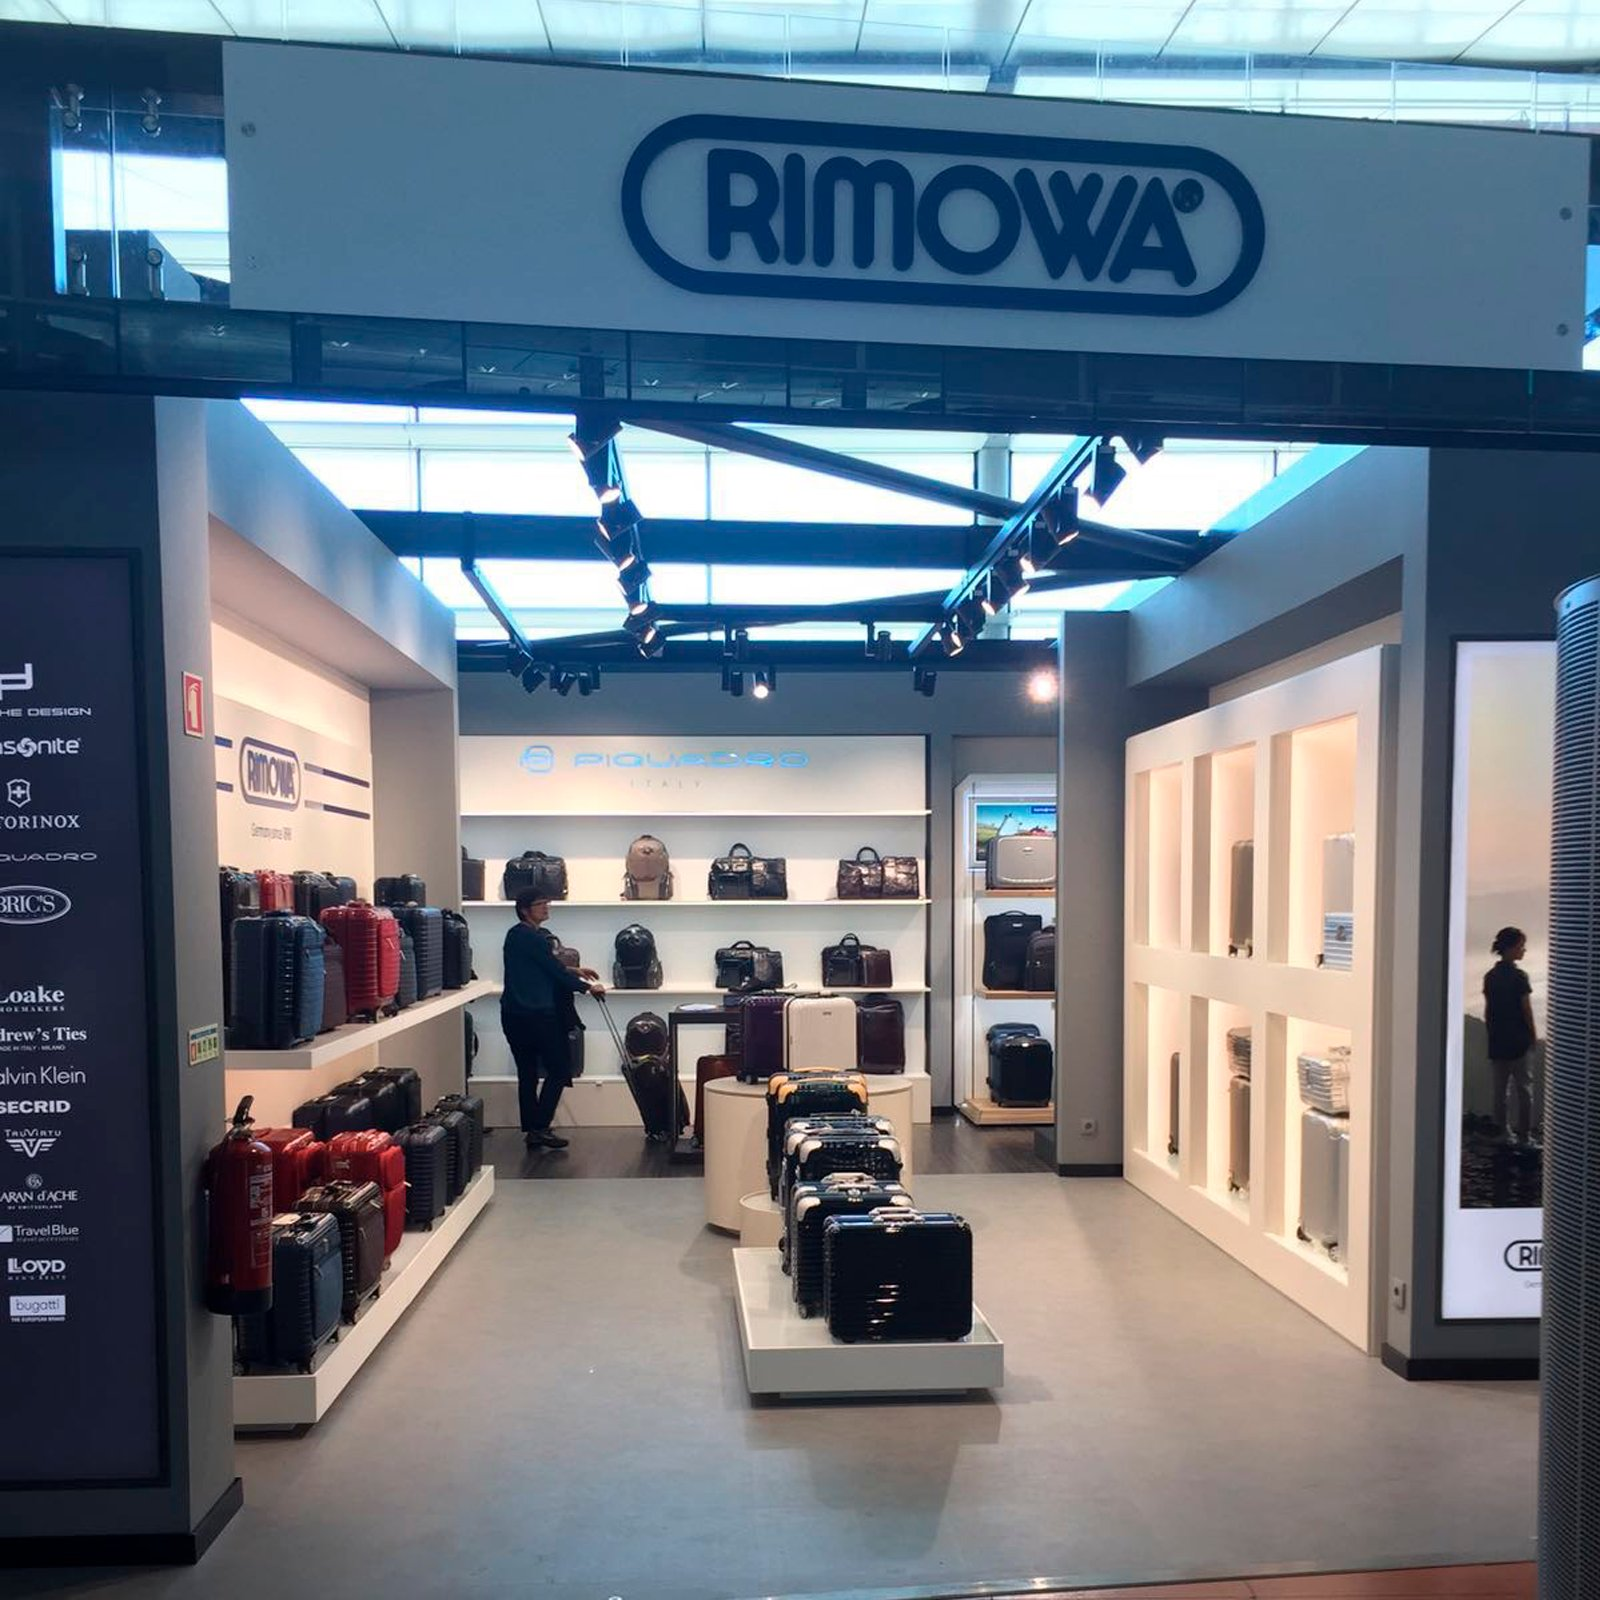 RIMOWA (AEROPORTO DO PORTO)